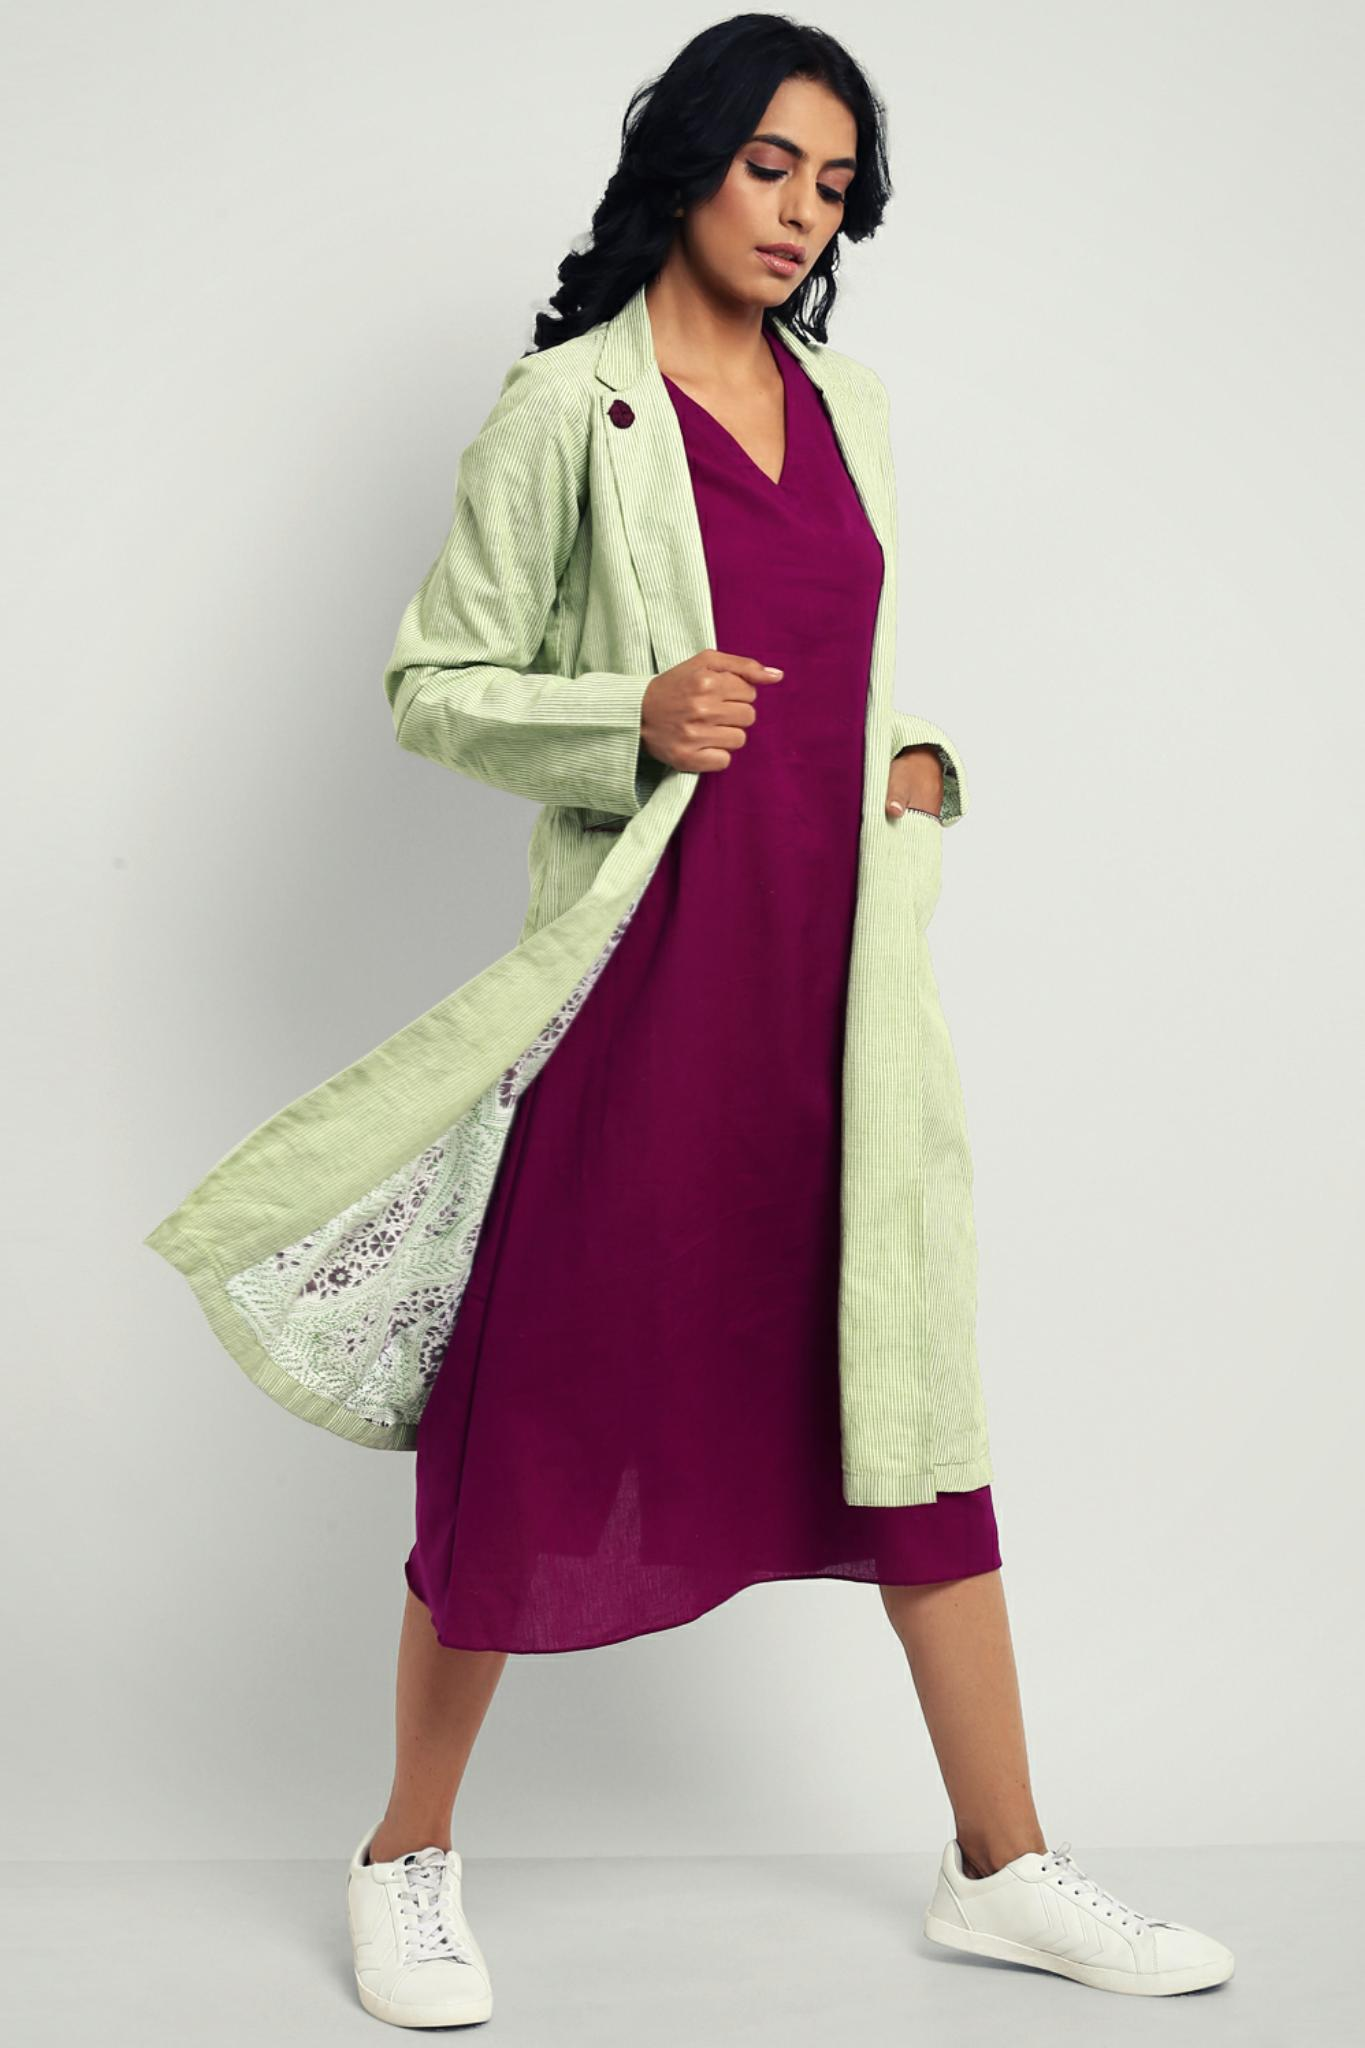 blazer dress - spring green & mauve